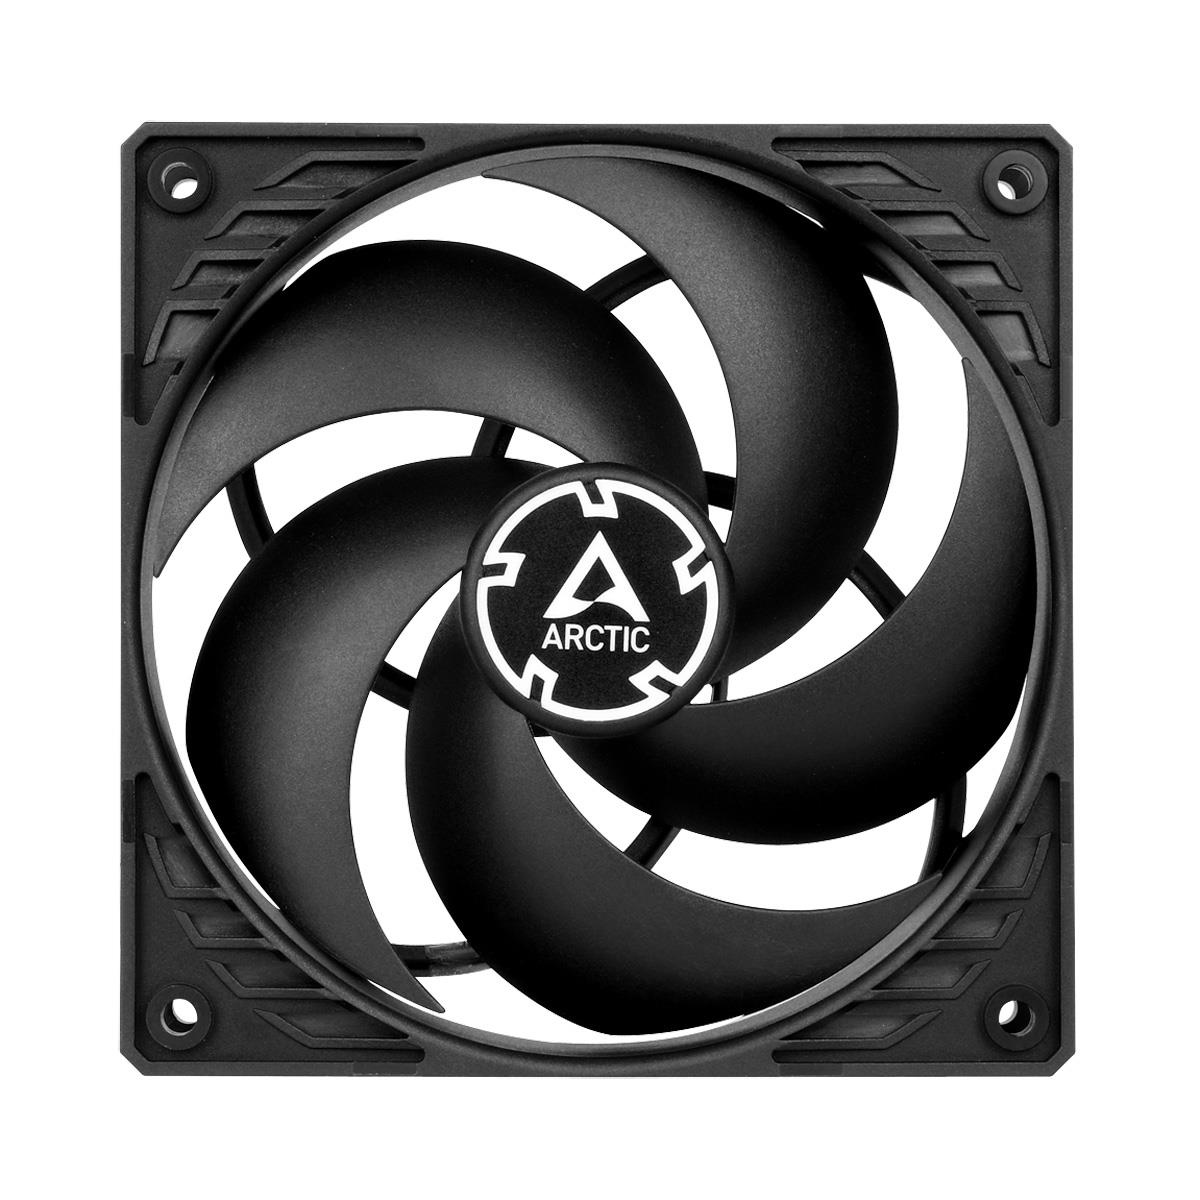 ARCTIC P12 PWM (Black/Black) Pressure-optimised 120 mm Fan with PWM ventilators